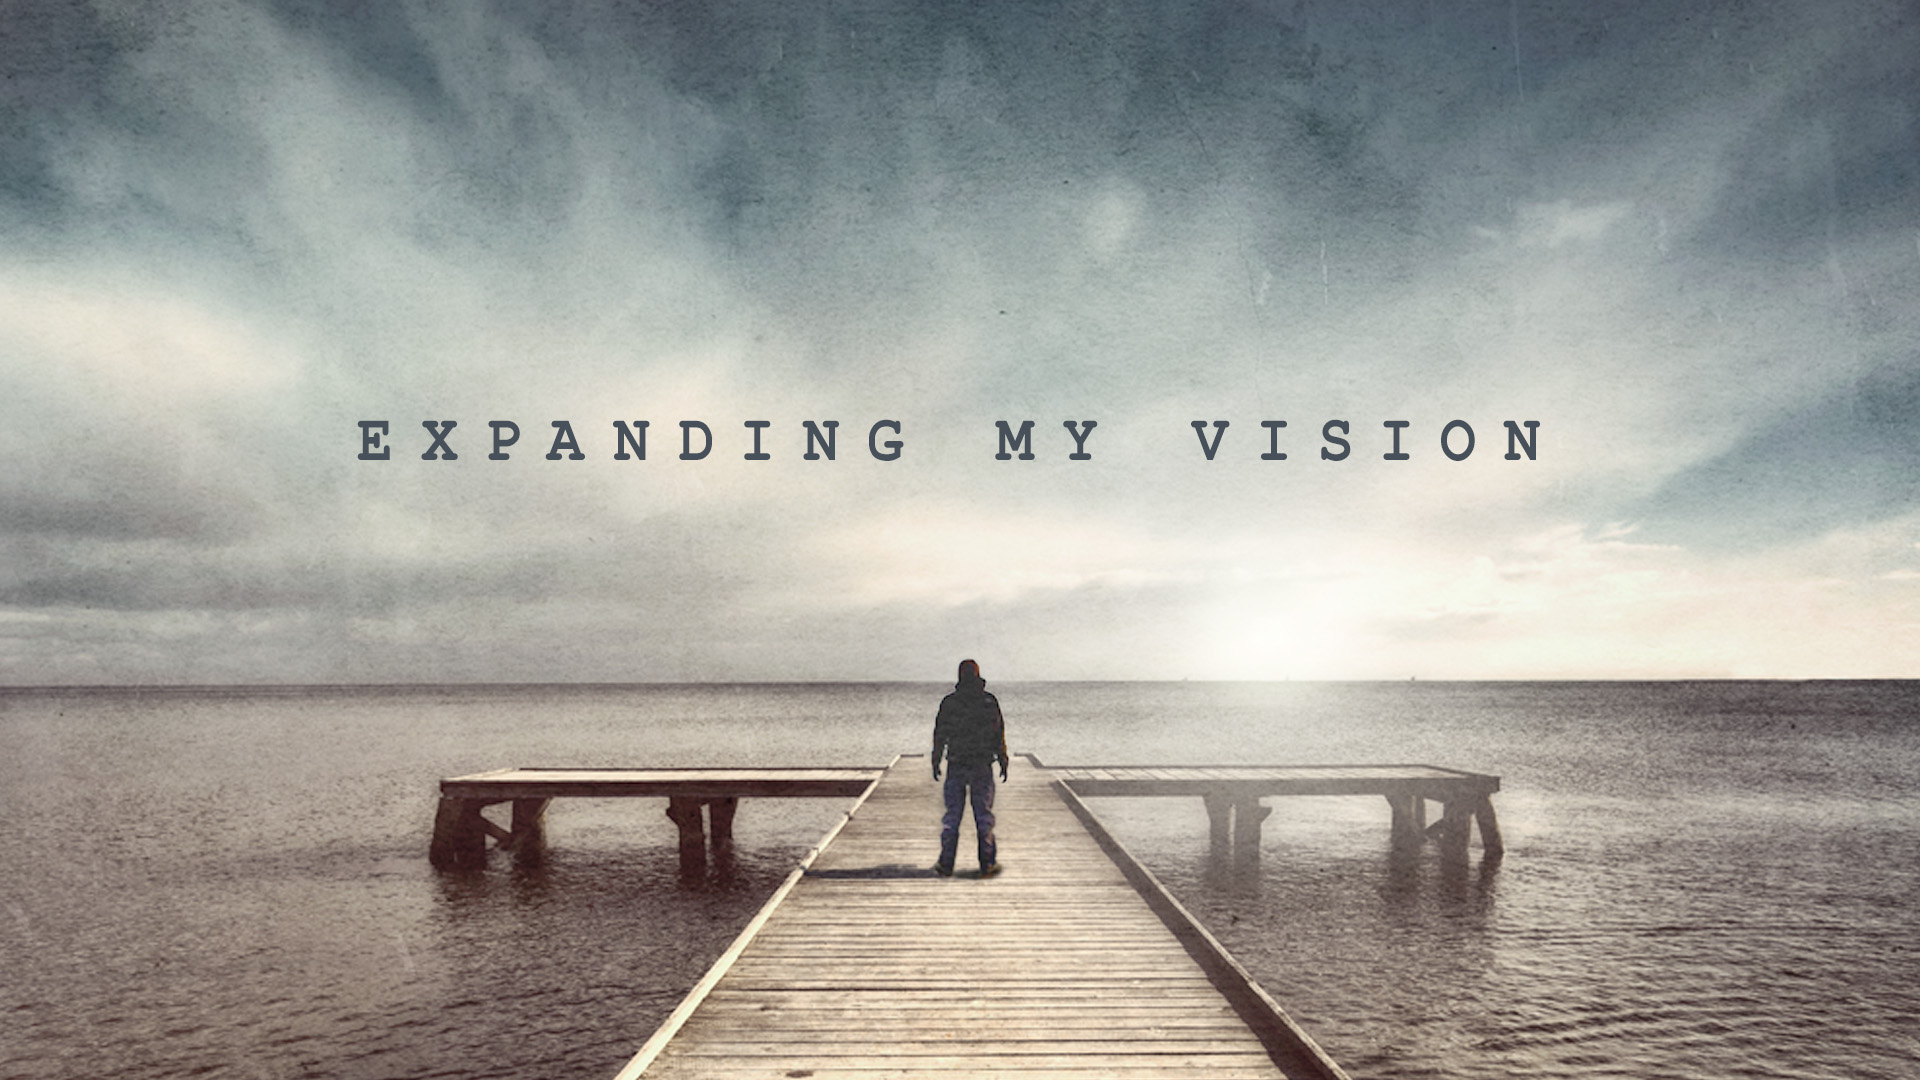 EXPANDING MY VISION